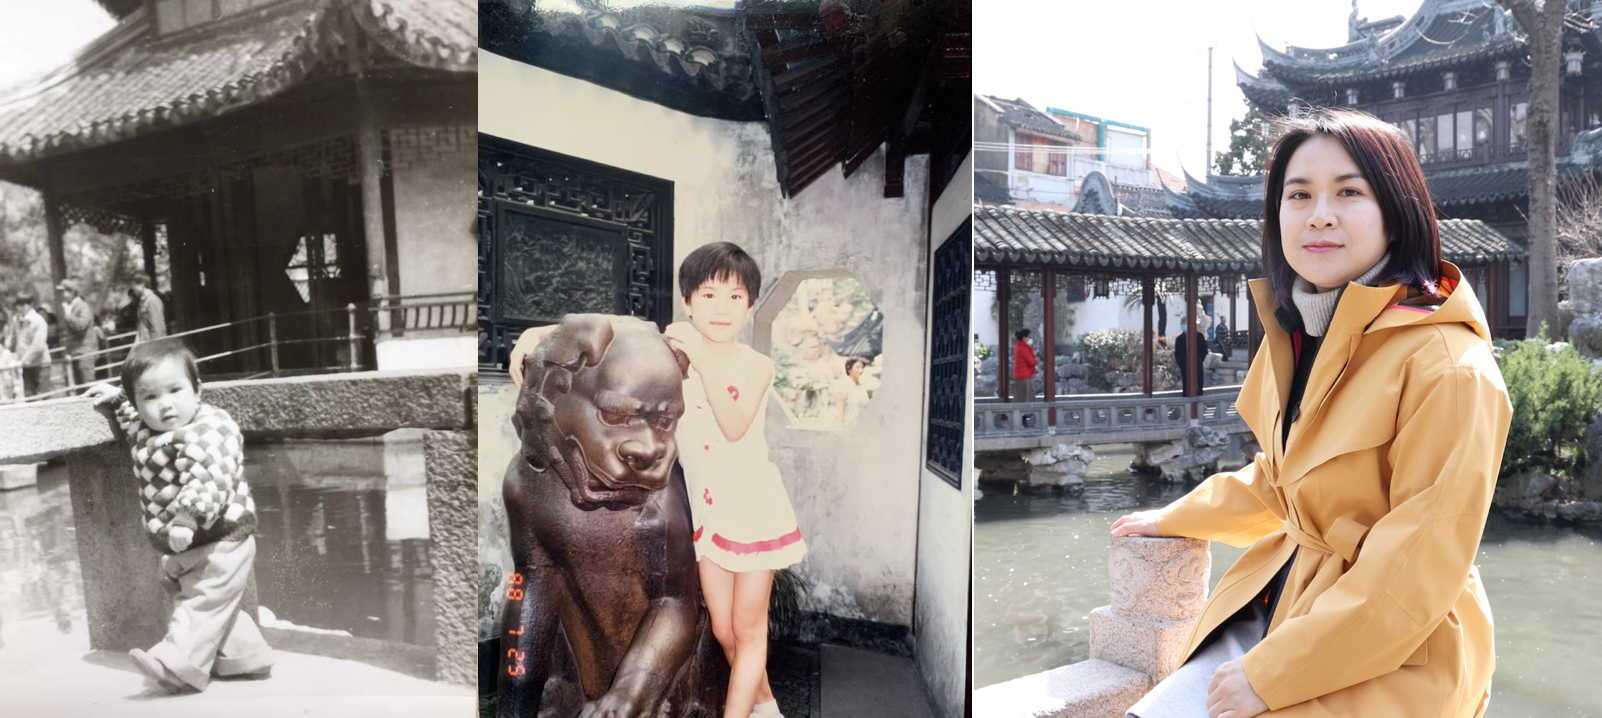 Zuo in a traditional Chinese garden as a baby, as a young girl, and as an adult